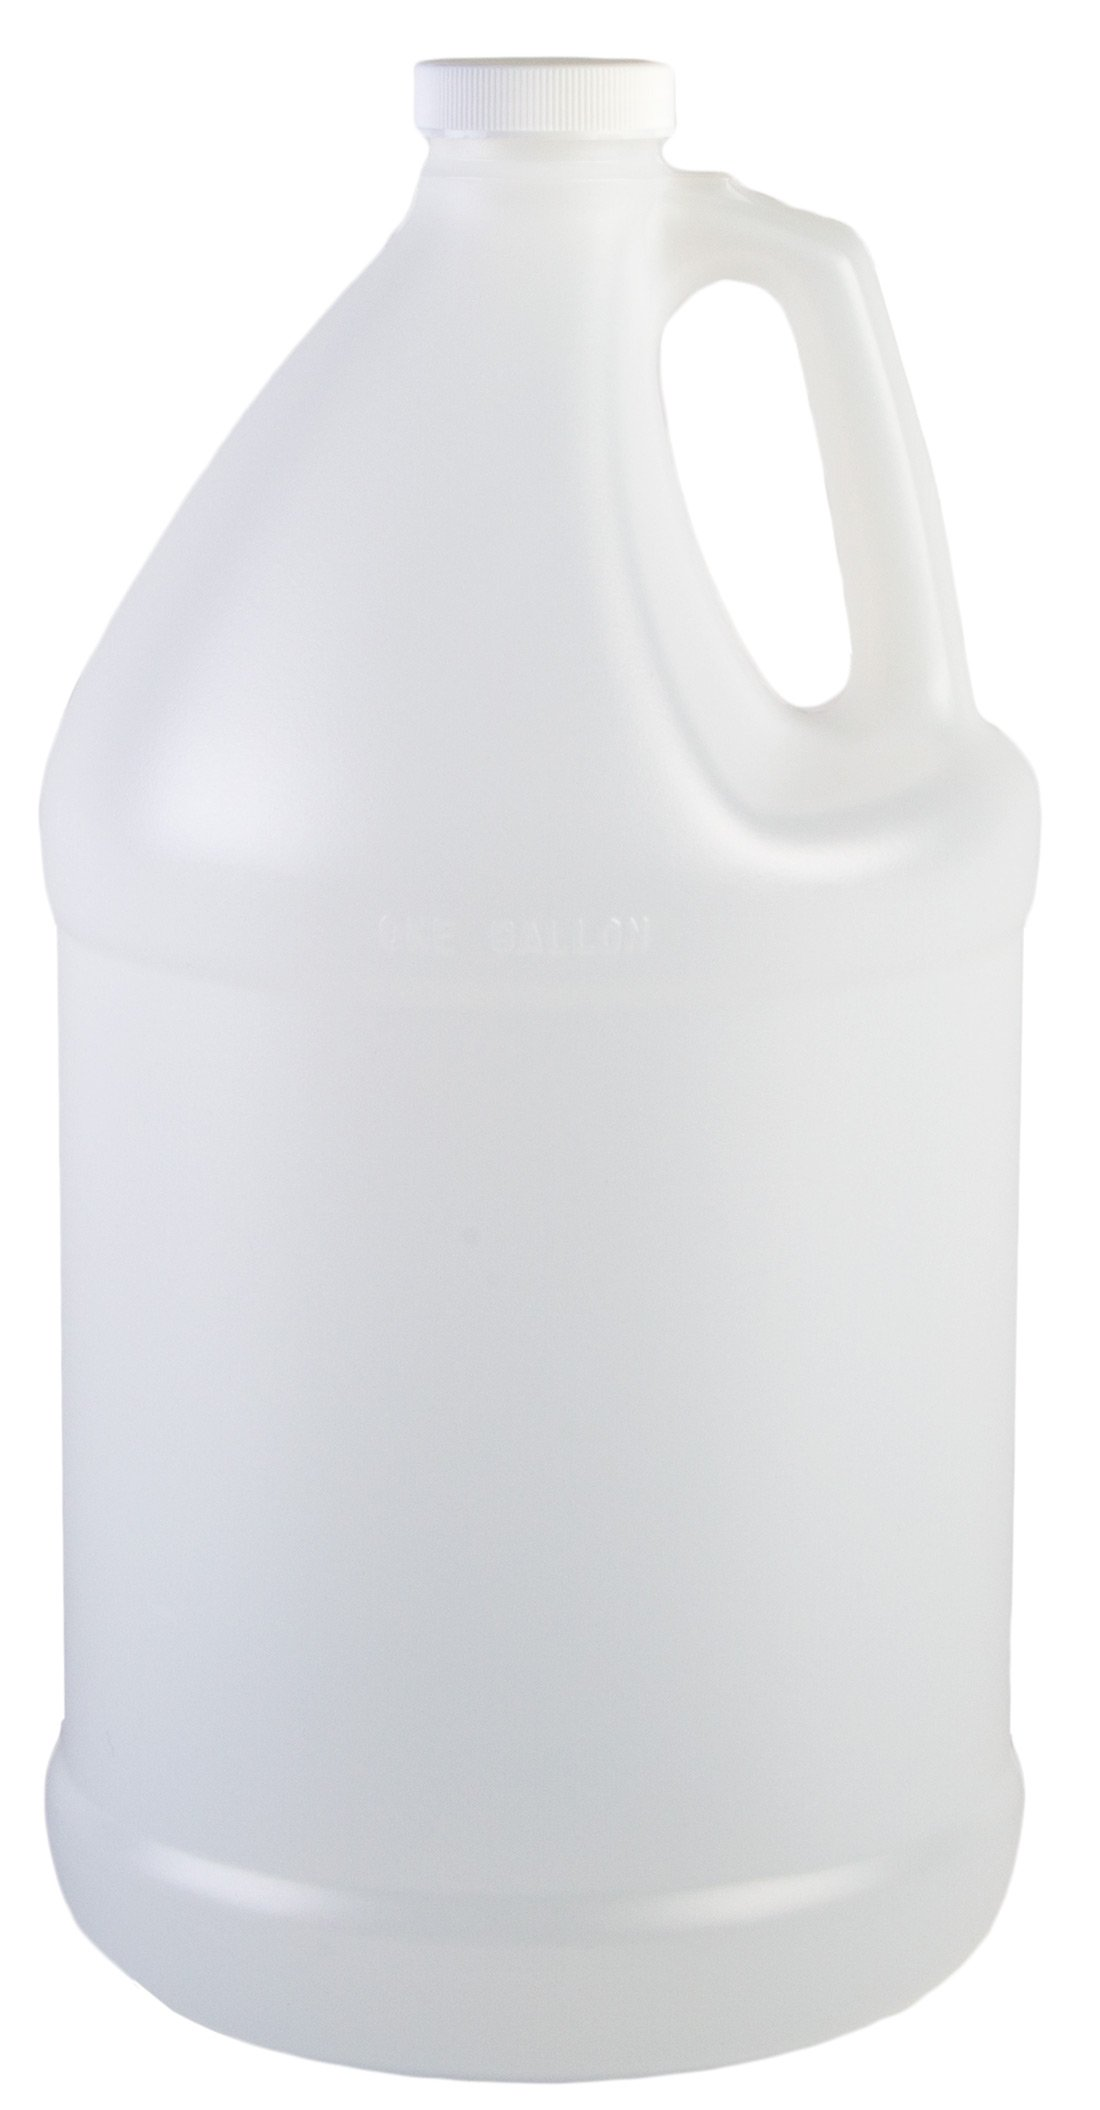 Hudson Exchange 1 Gallon Round Plastic Jug with Cap, HDPE, Natural, 4 Pack